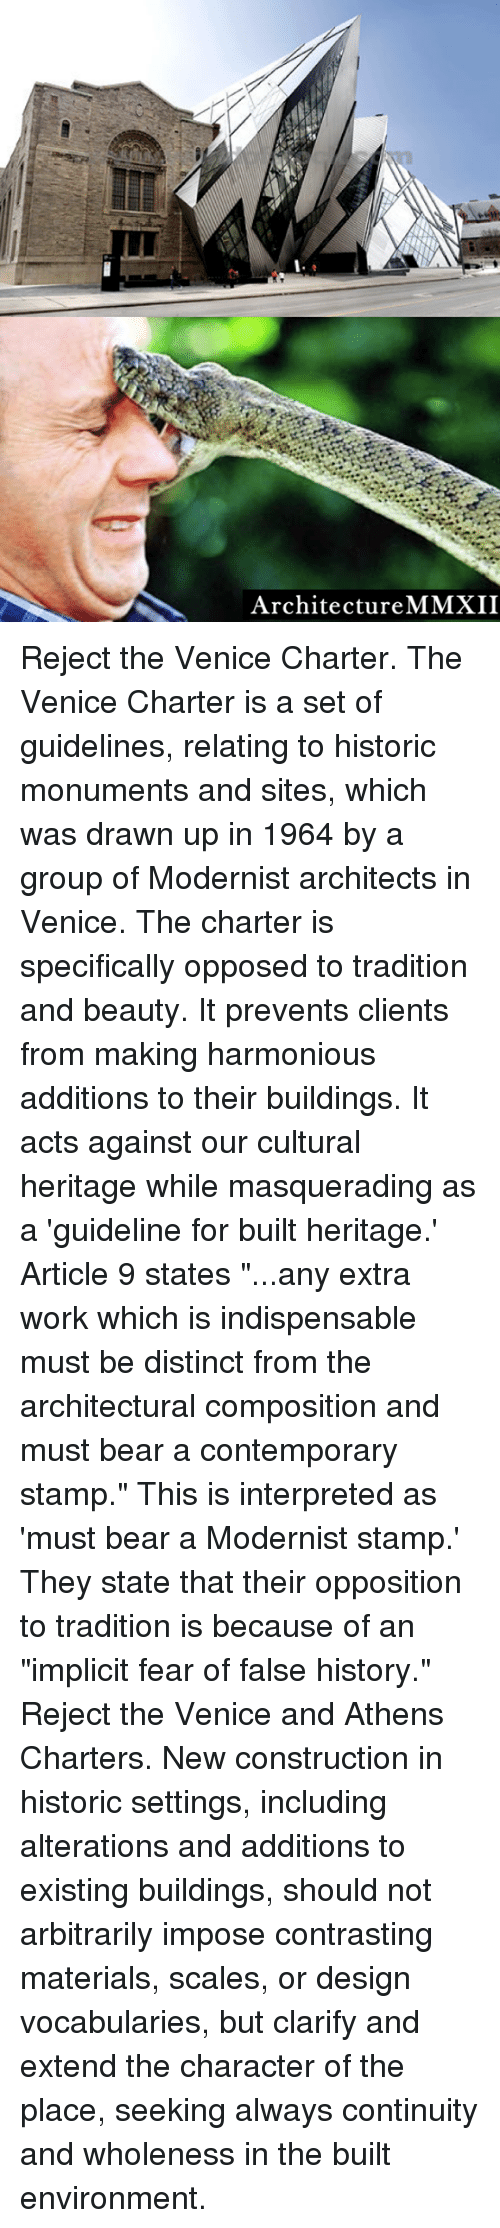 """Beautiful, Dank, and Work: Architecture MMXII Reject the Venice Charter.  The Venice Charter is a set of guidelines, relating to historic monuments and sites, which was drawn up in 1964 by a group of Modernist architects in Venice.   The charter is specifically opposed to tradition and beauty. It prevents clients from making harmonious additions to their buildings. It acts against our cultural heritage while masquerading as a 'guideline for built heritage.'  Article 9 states """"...any extra work which is indispensable must be distinct from the architectural composition and must bear a contemporary stamp."""" This is interpreted as 'must bear a Modernist stamp.' They state that their opposition to tradition is because of an """"implicit fear of false history.""""   Reject the Venice and Athens Charters.  New construction in historic settings, including alterations and additions to existing buildings, should not arbitrarily impose contrasting materials, scales, or design vocabularies, but clarify and extend the character of the place, seeking always continuity and wholeness in the built environment."""